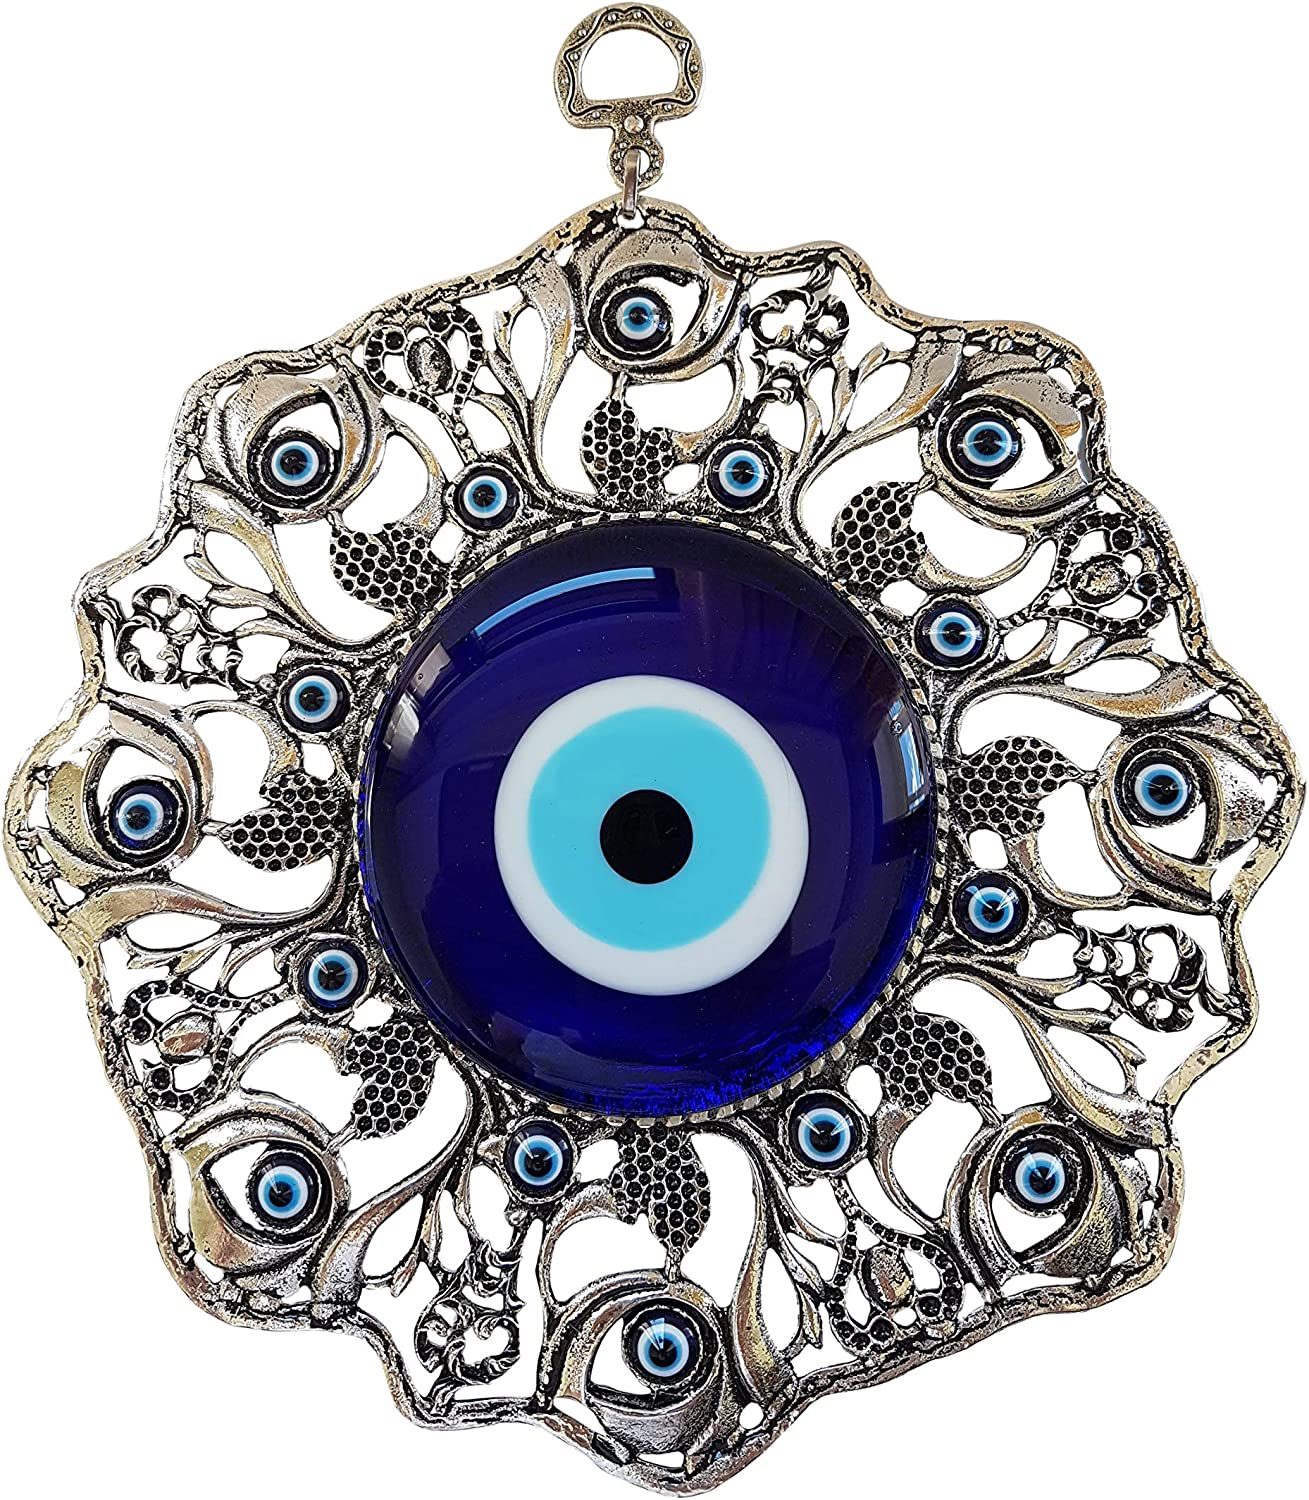 Erbulus Turkish Large Glass Blue Evil Eye Wall Hanging Ornament with Eye - Metal Home Decor - Turkish Nazar Bead Amulet - Protection and Good Luck Charm Gift in a Box